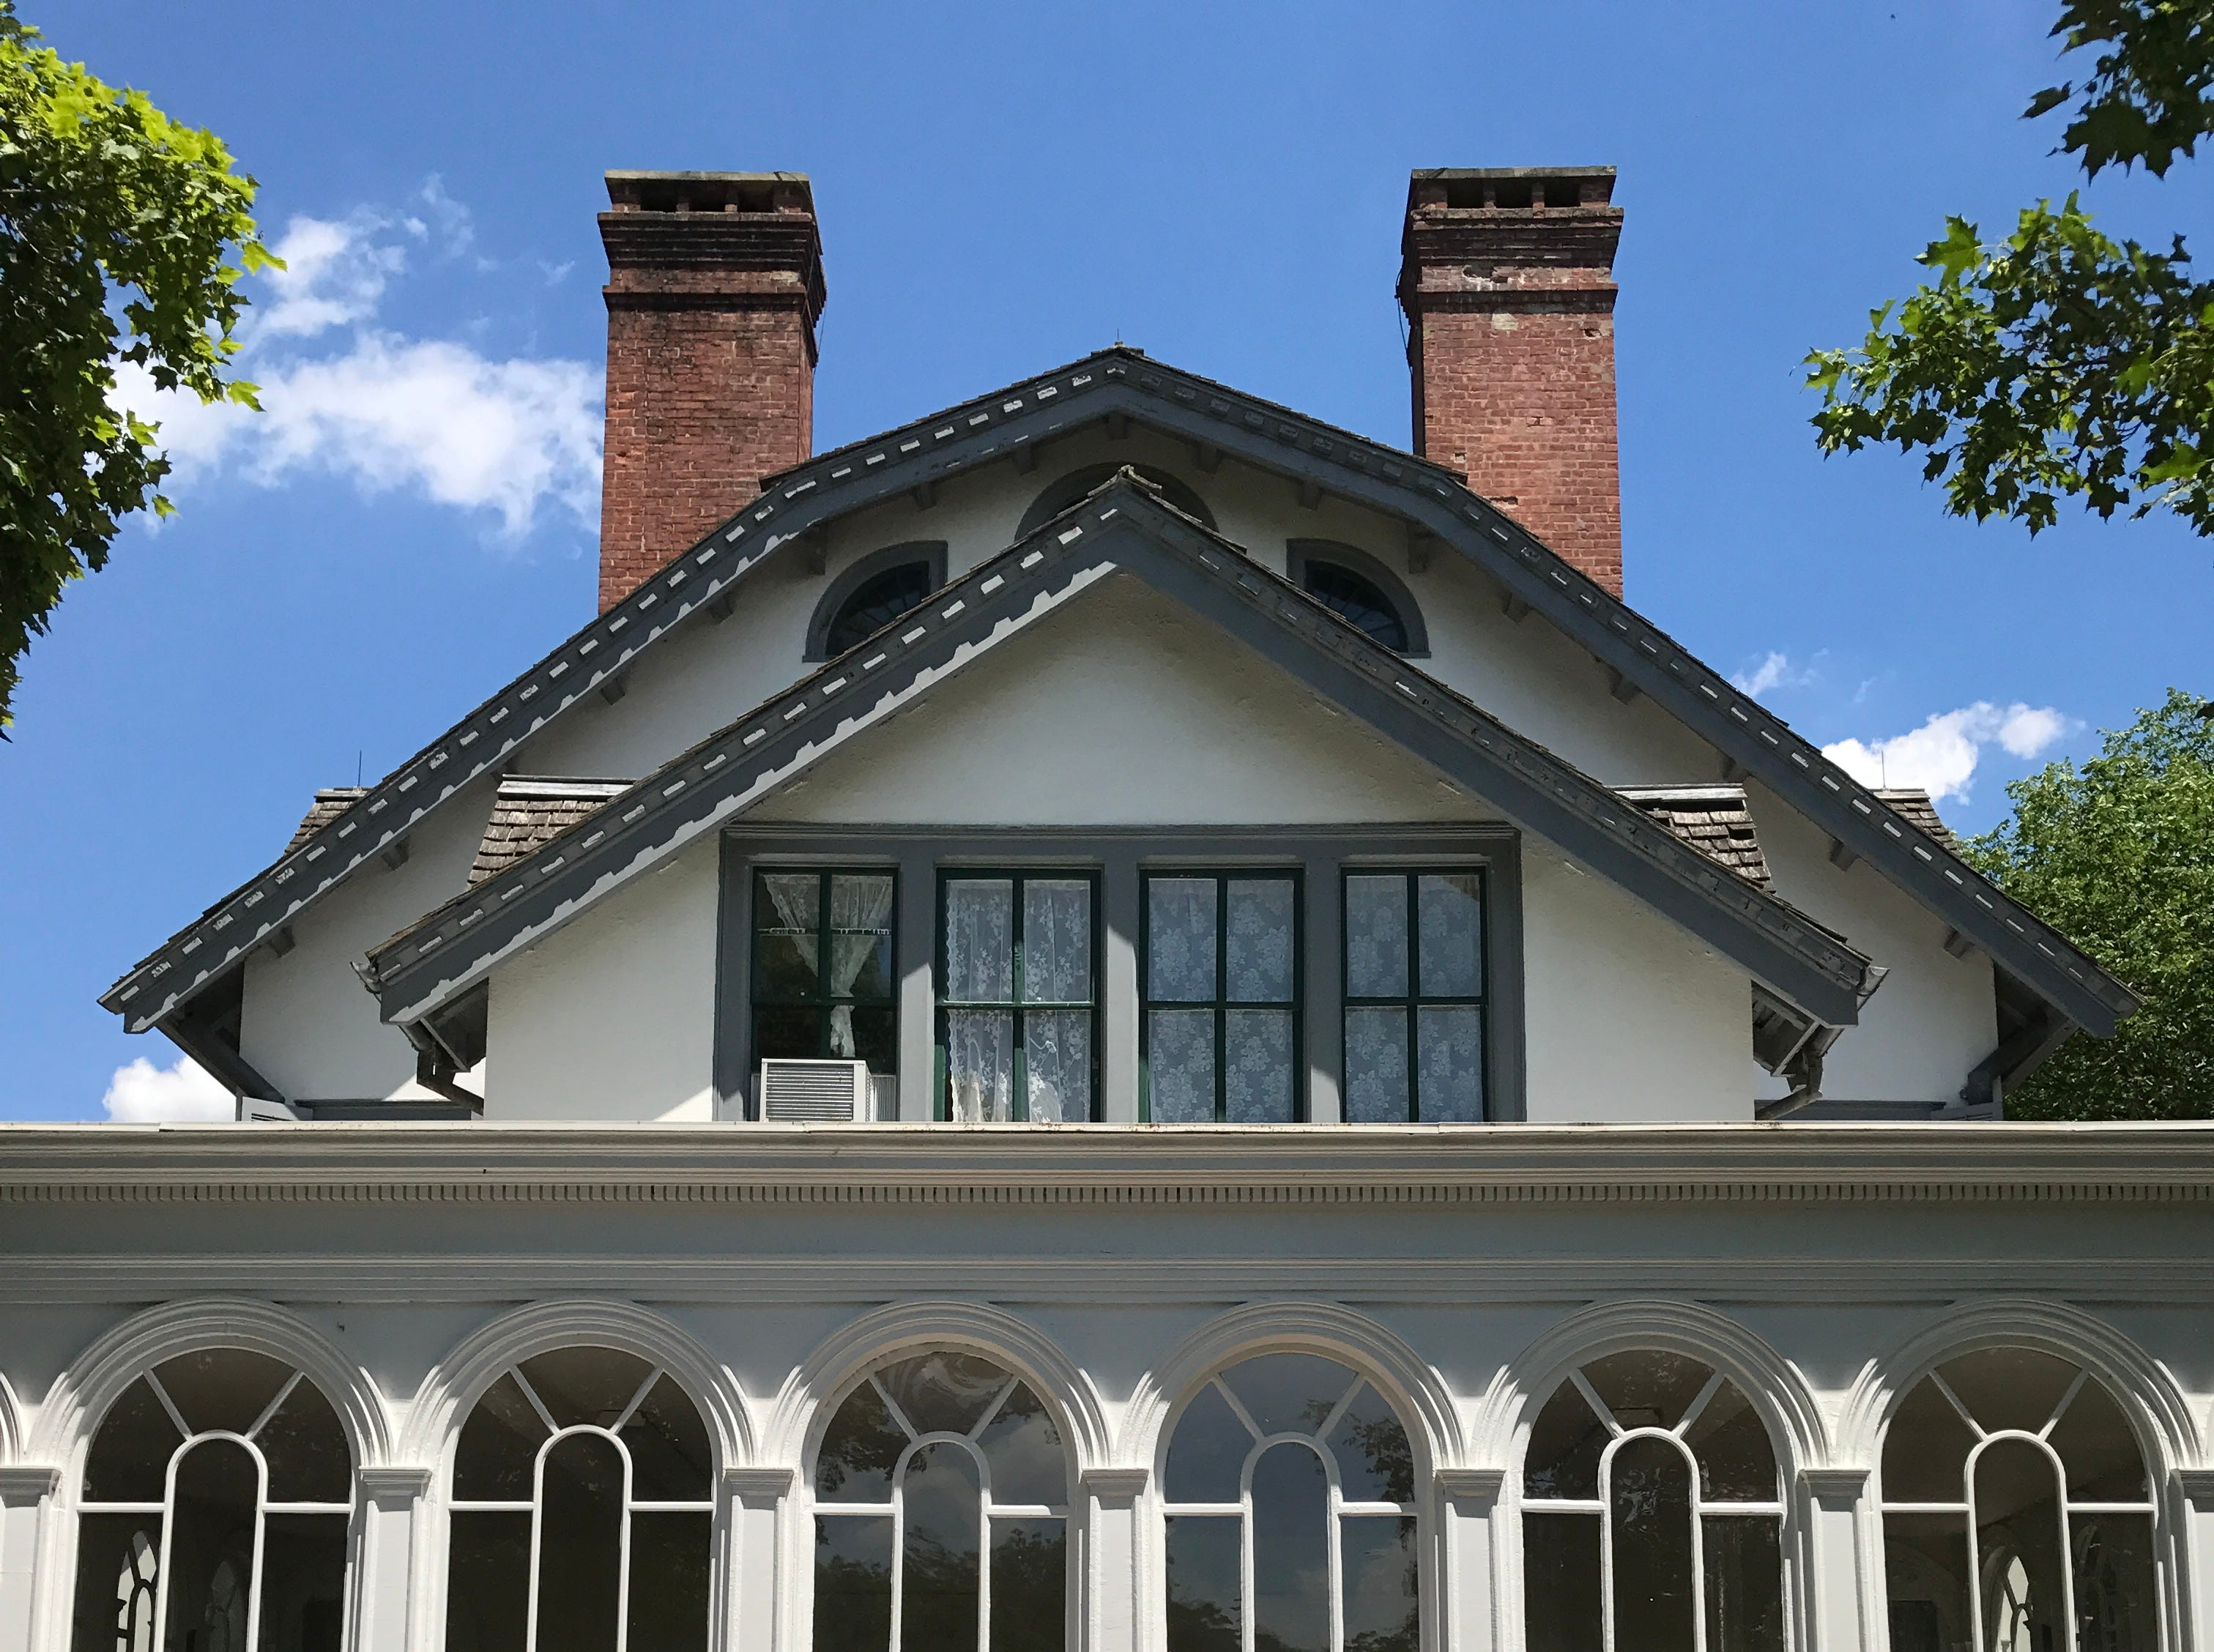 Ringwood State Park and Ringwood Manor in Passaic County, N.J. make use of a historic estate once owned by members of the Cooper and Hewitt families. The well-maintained grounds are open daily, as they were on June 30, 2017